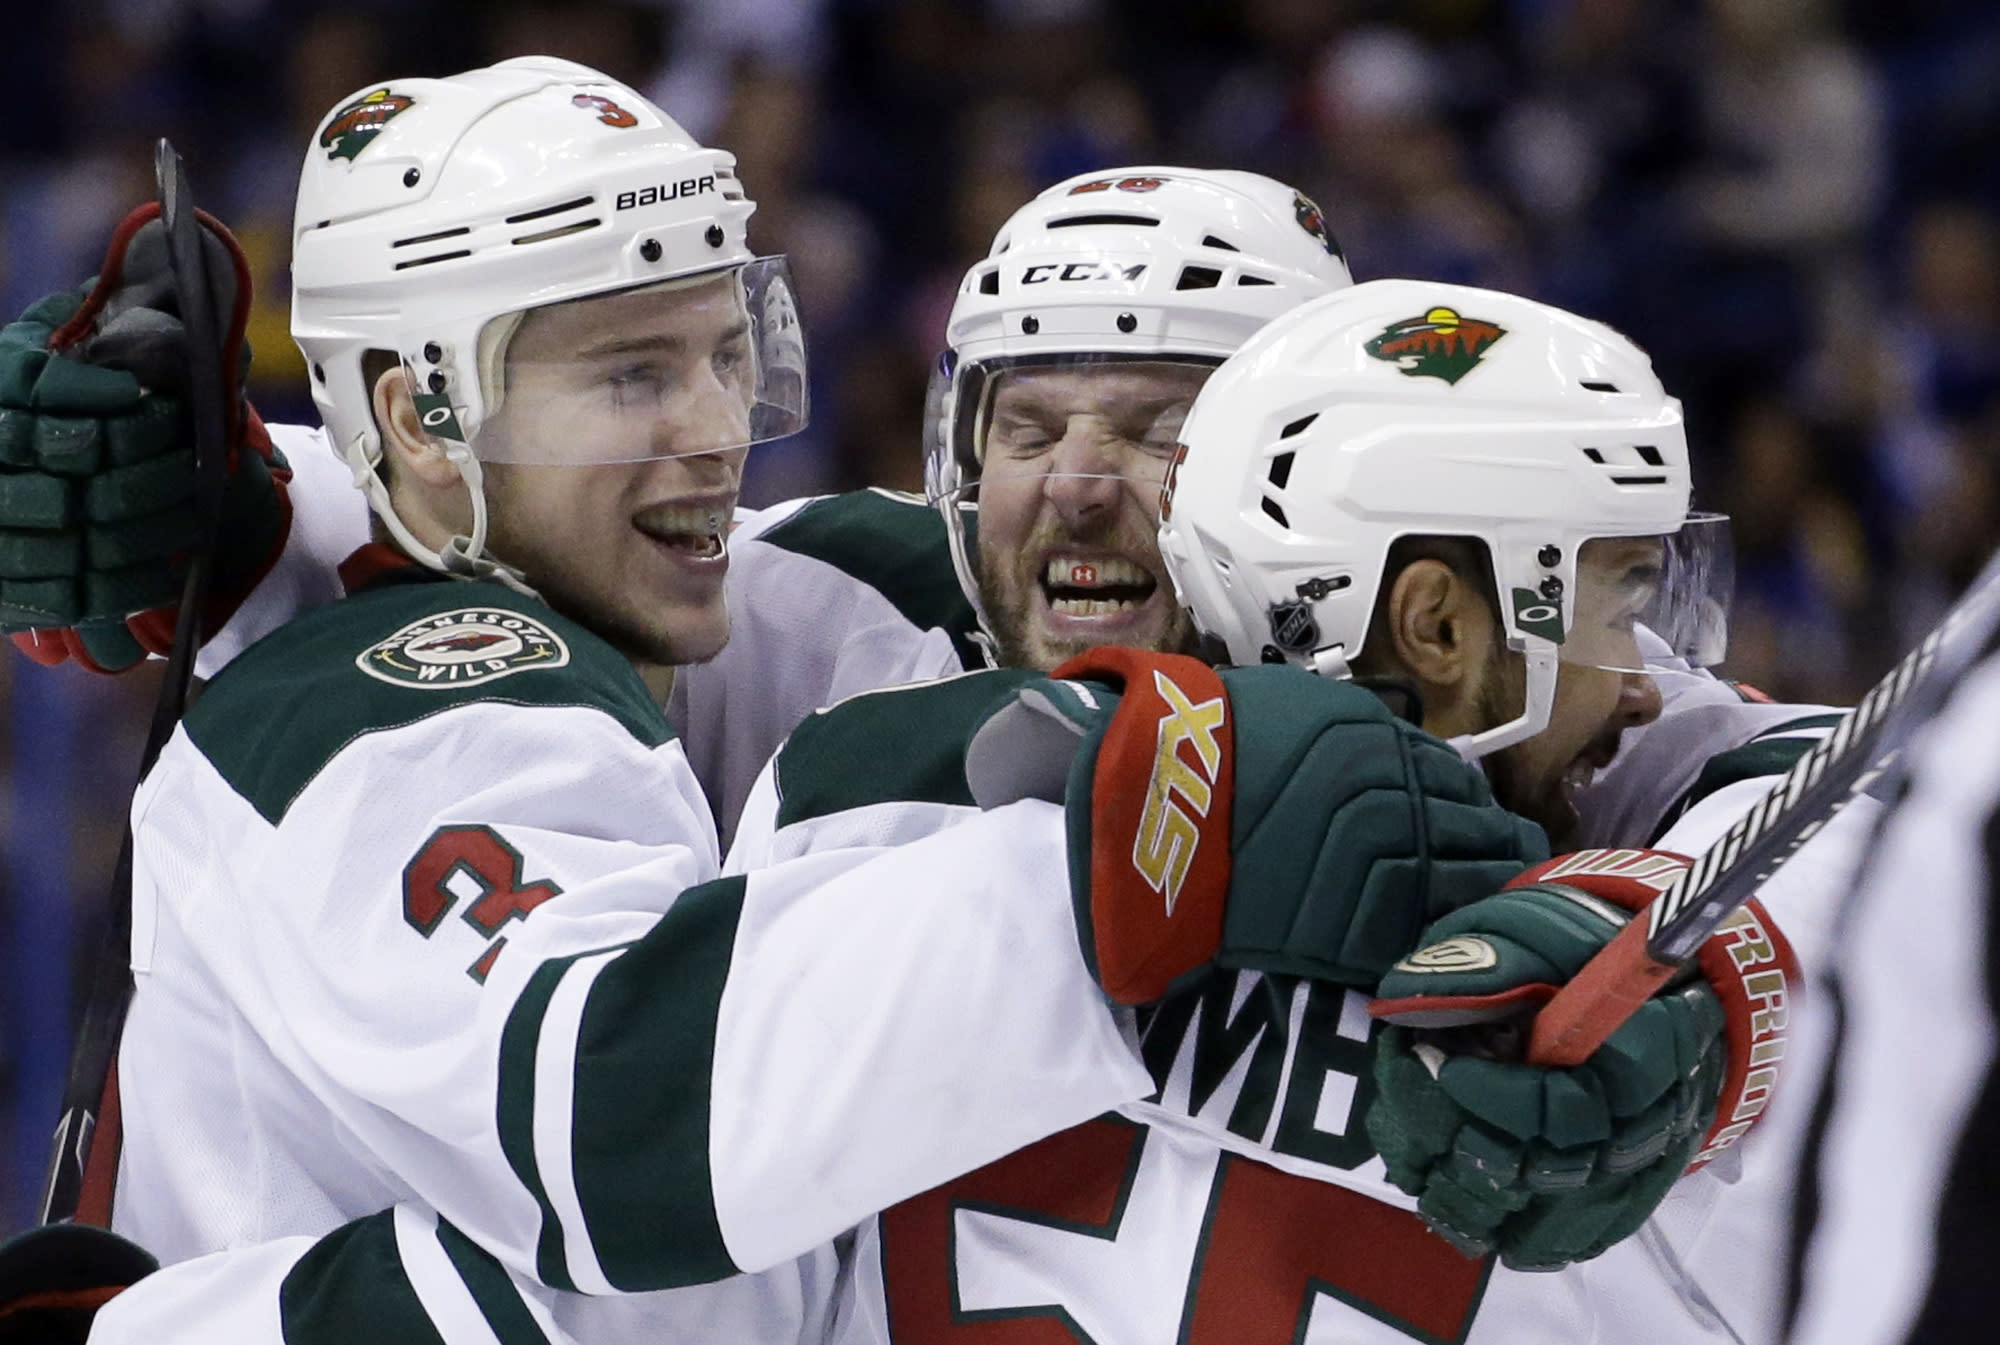 Home-ice advantage overrated in Wild-Blues series